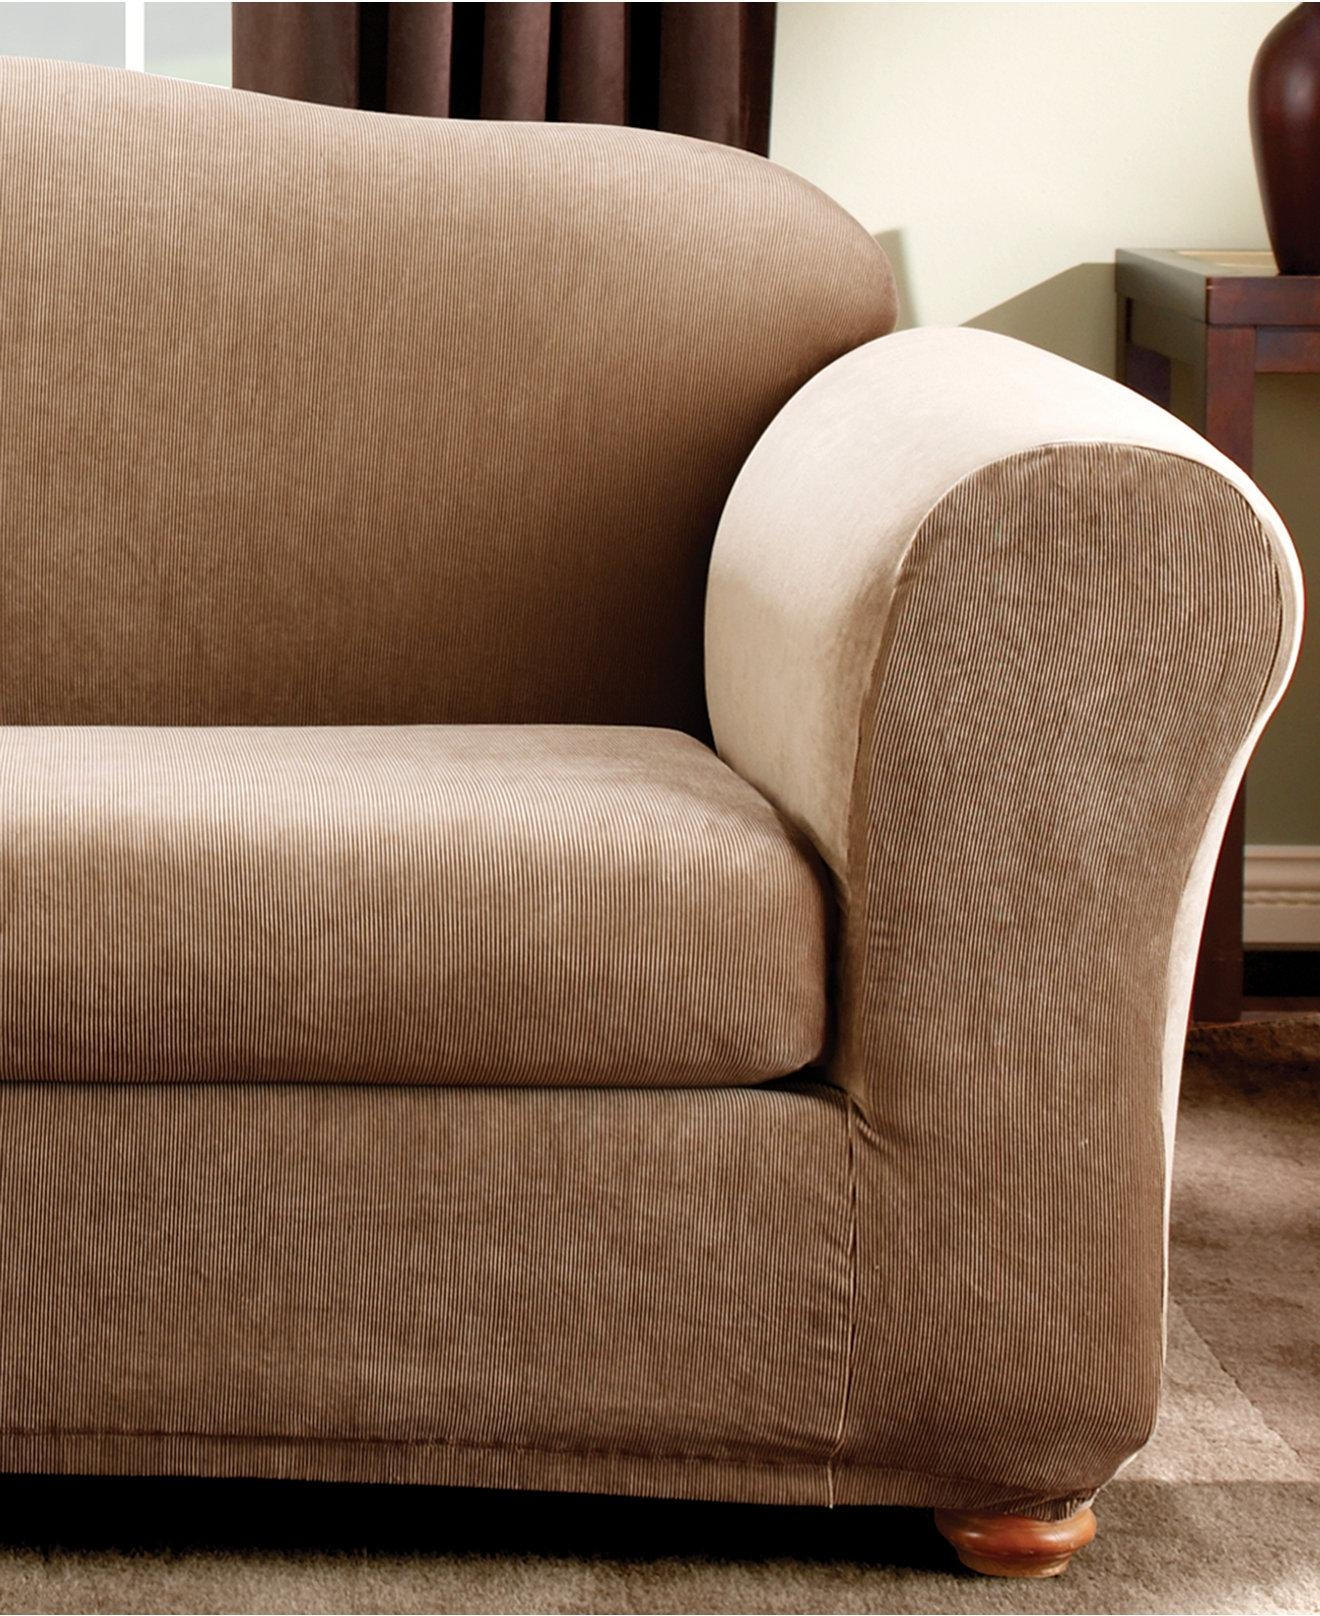 3 Piece Sofa Slipcover | Ira Design Pertaining To 3 Piece Sofa Slipcovers  (Image 1